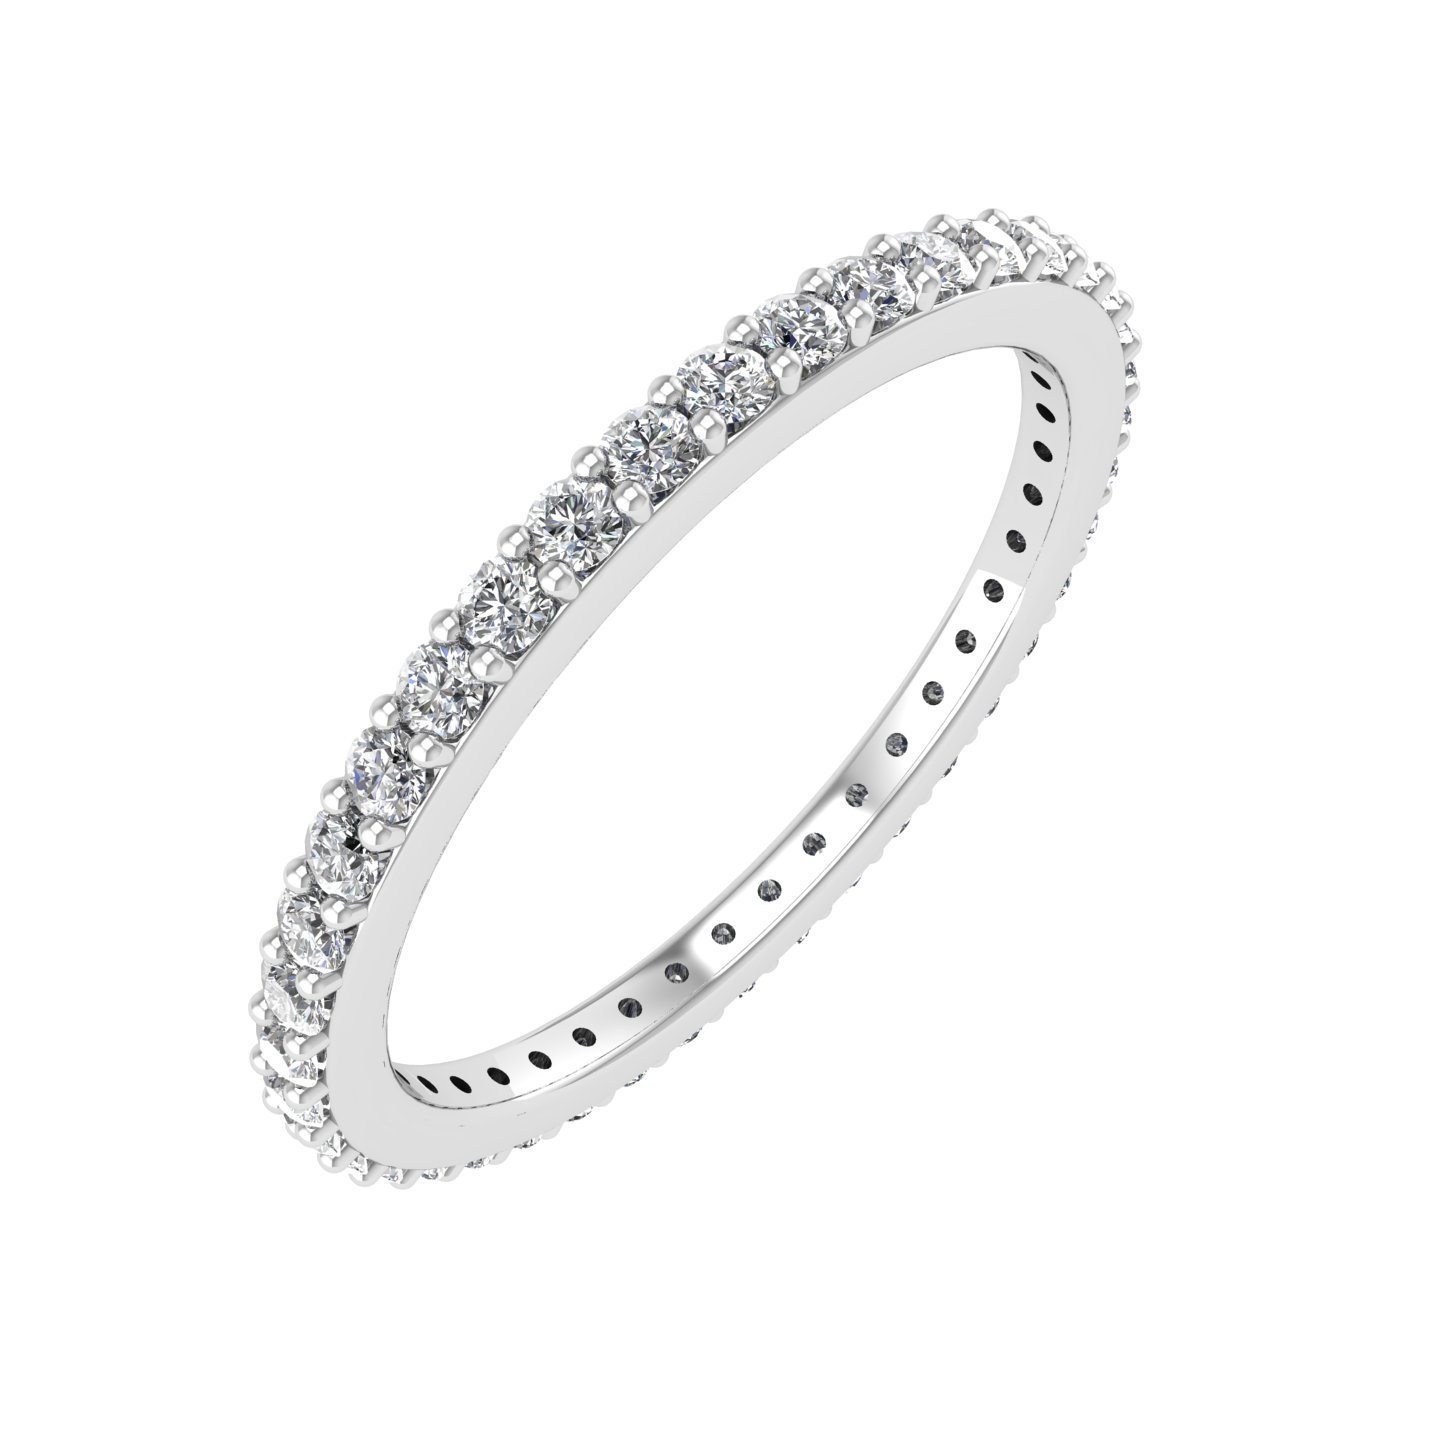 14k White Gold Diamond Eternity Band Ring (0.45 Carat)